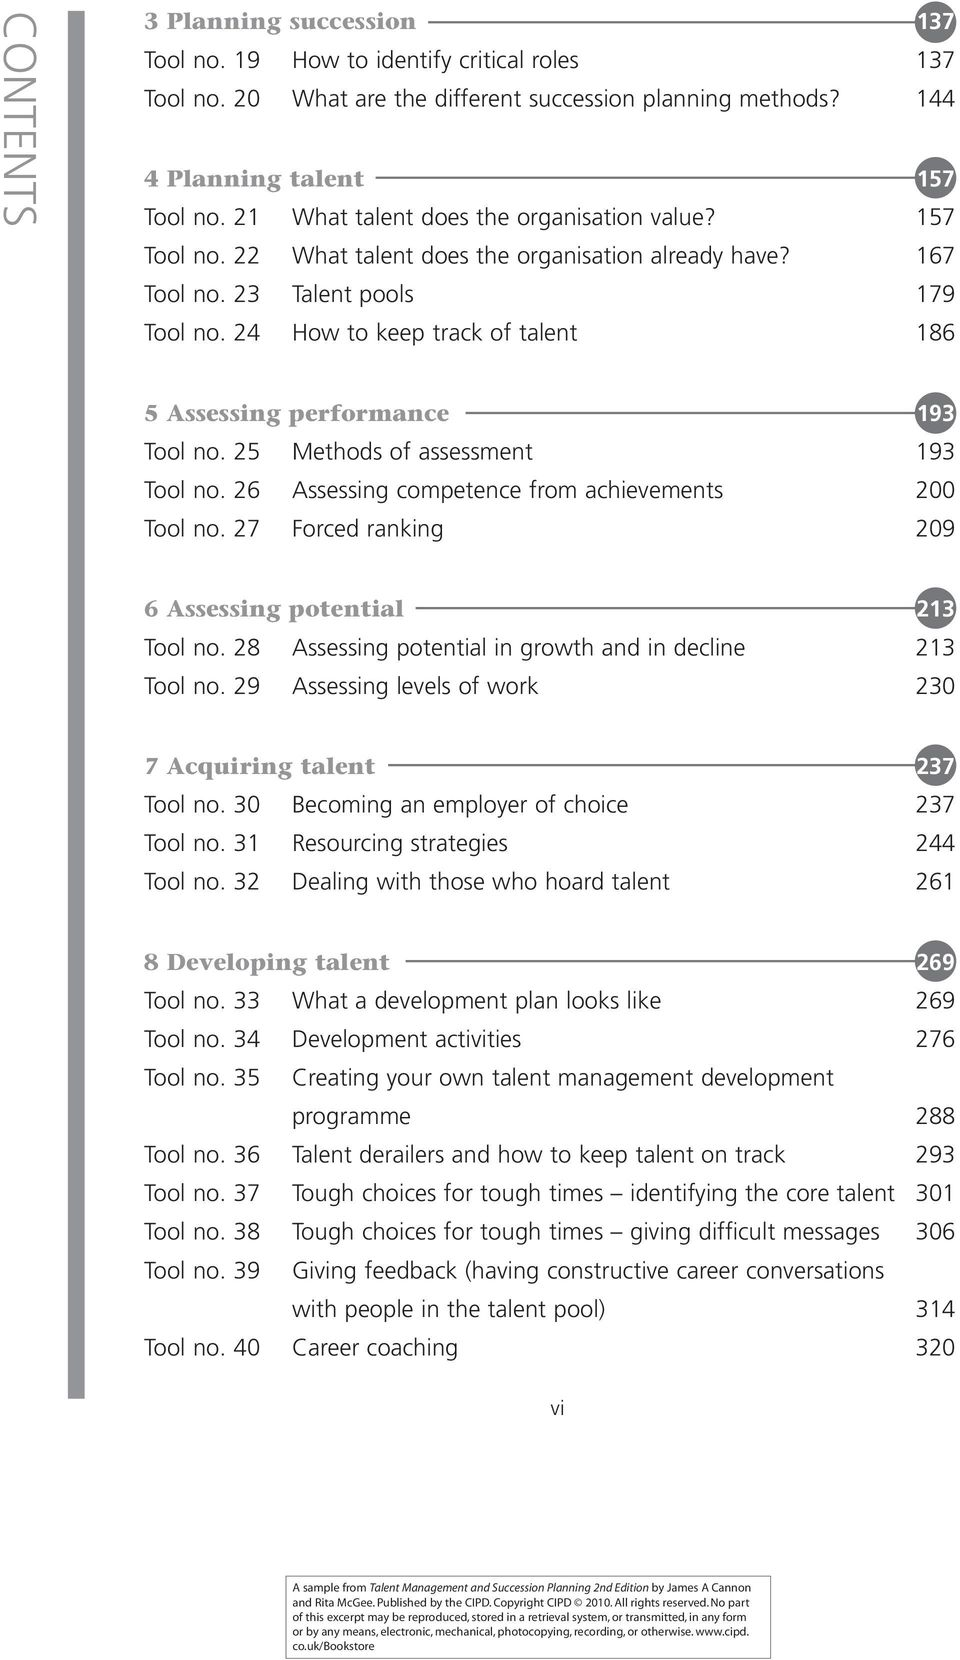 24 How to keep track of talent 186 5 Assessing performance 193 Tool no. 25 Methods of assessment 193 Tool no. 26 Assessing competence from achievements 200 Tool no.